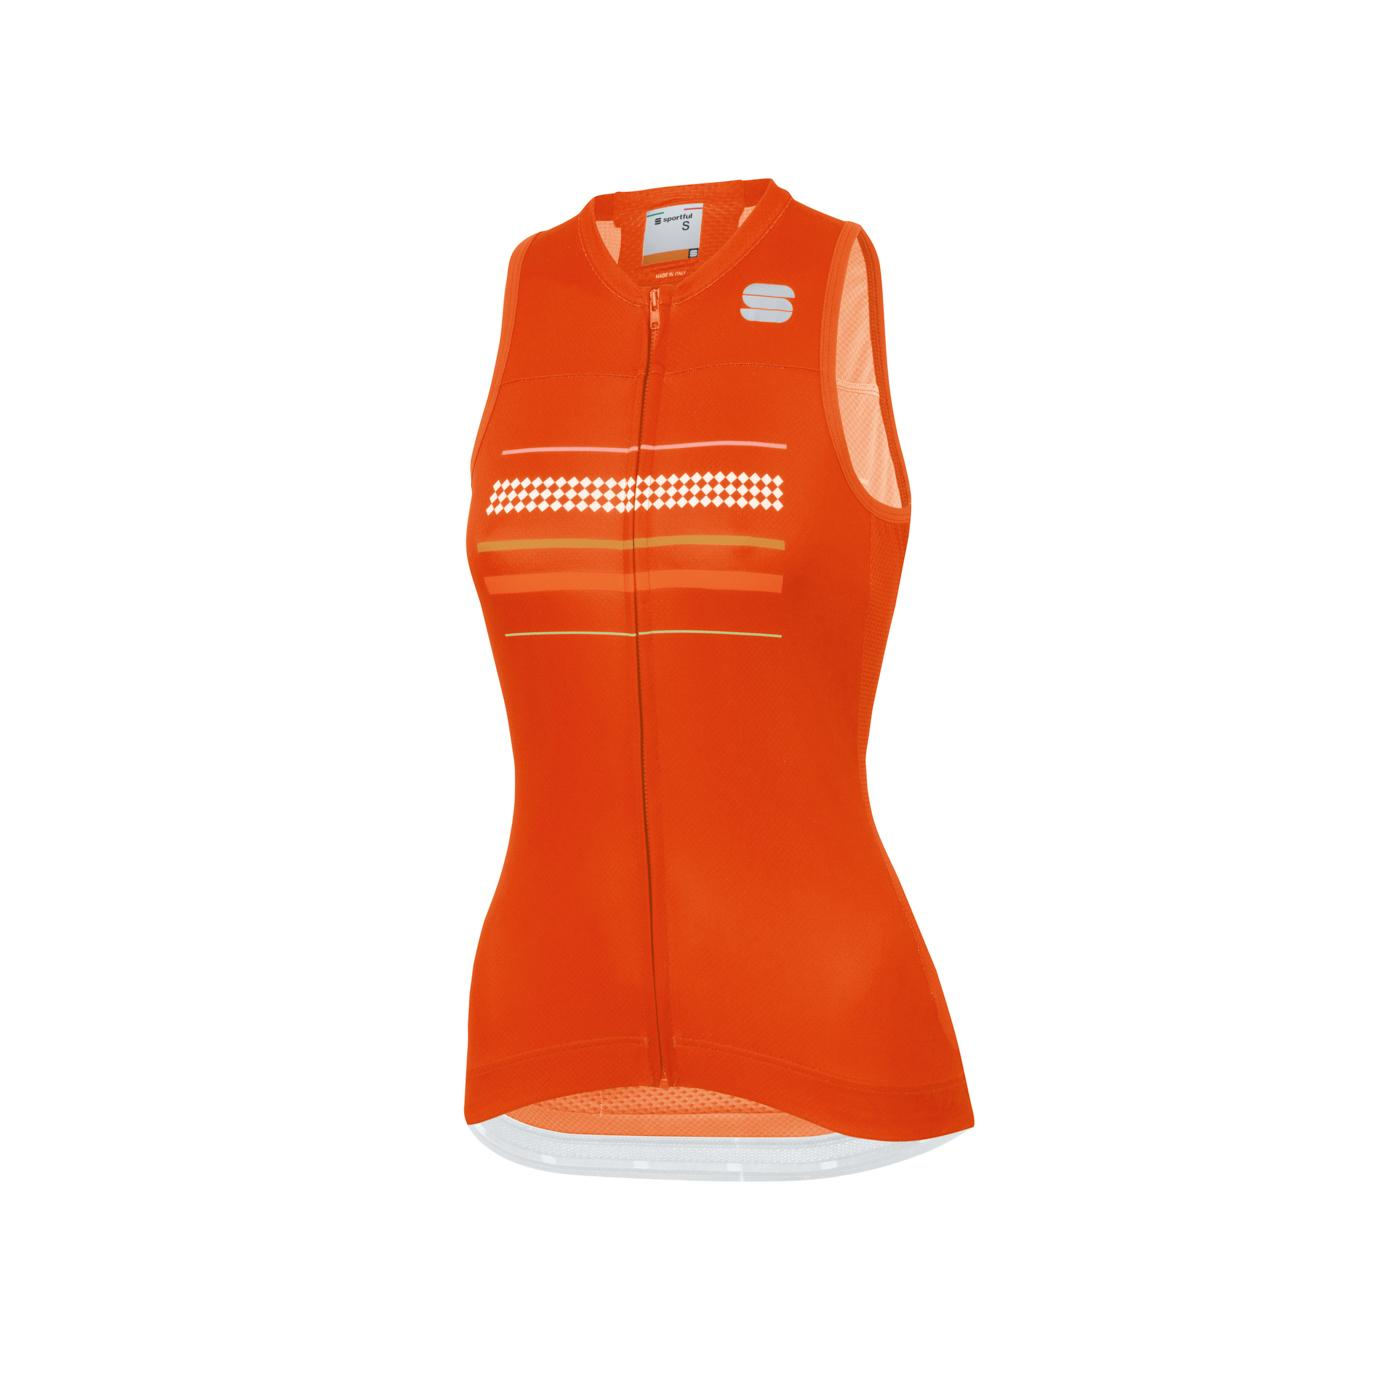 Sportful Fietsshirt Mouwloos voor Dames Rood - SF Diva W Sleeveless Jersey-Fire Red